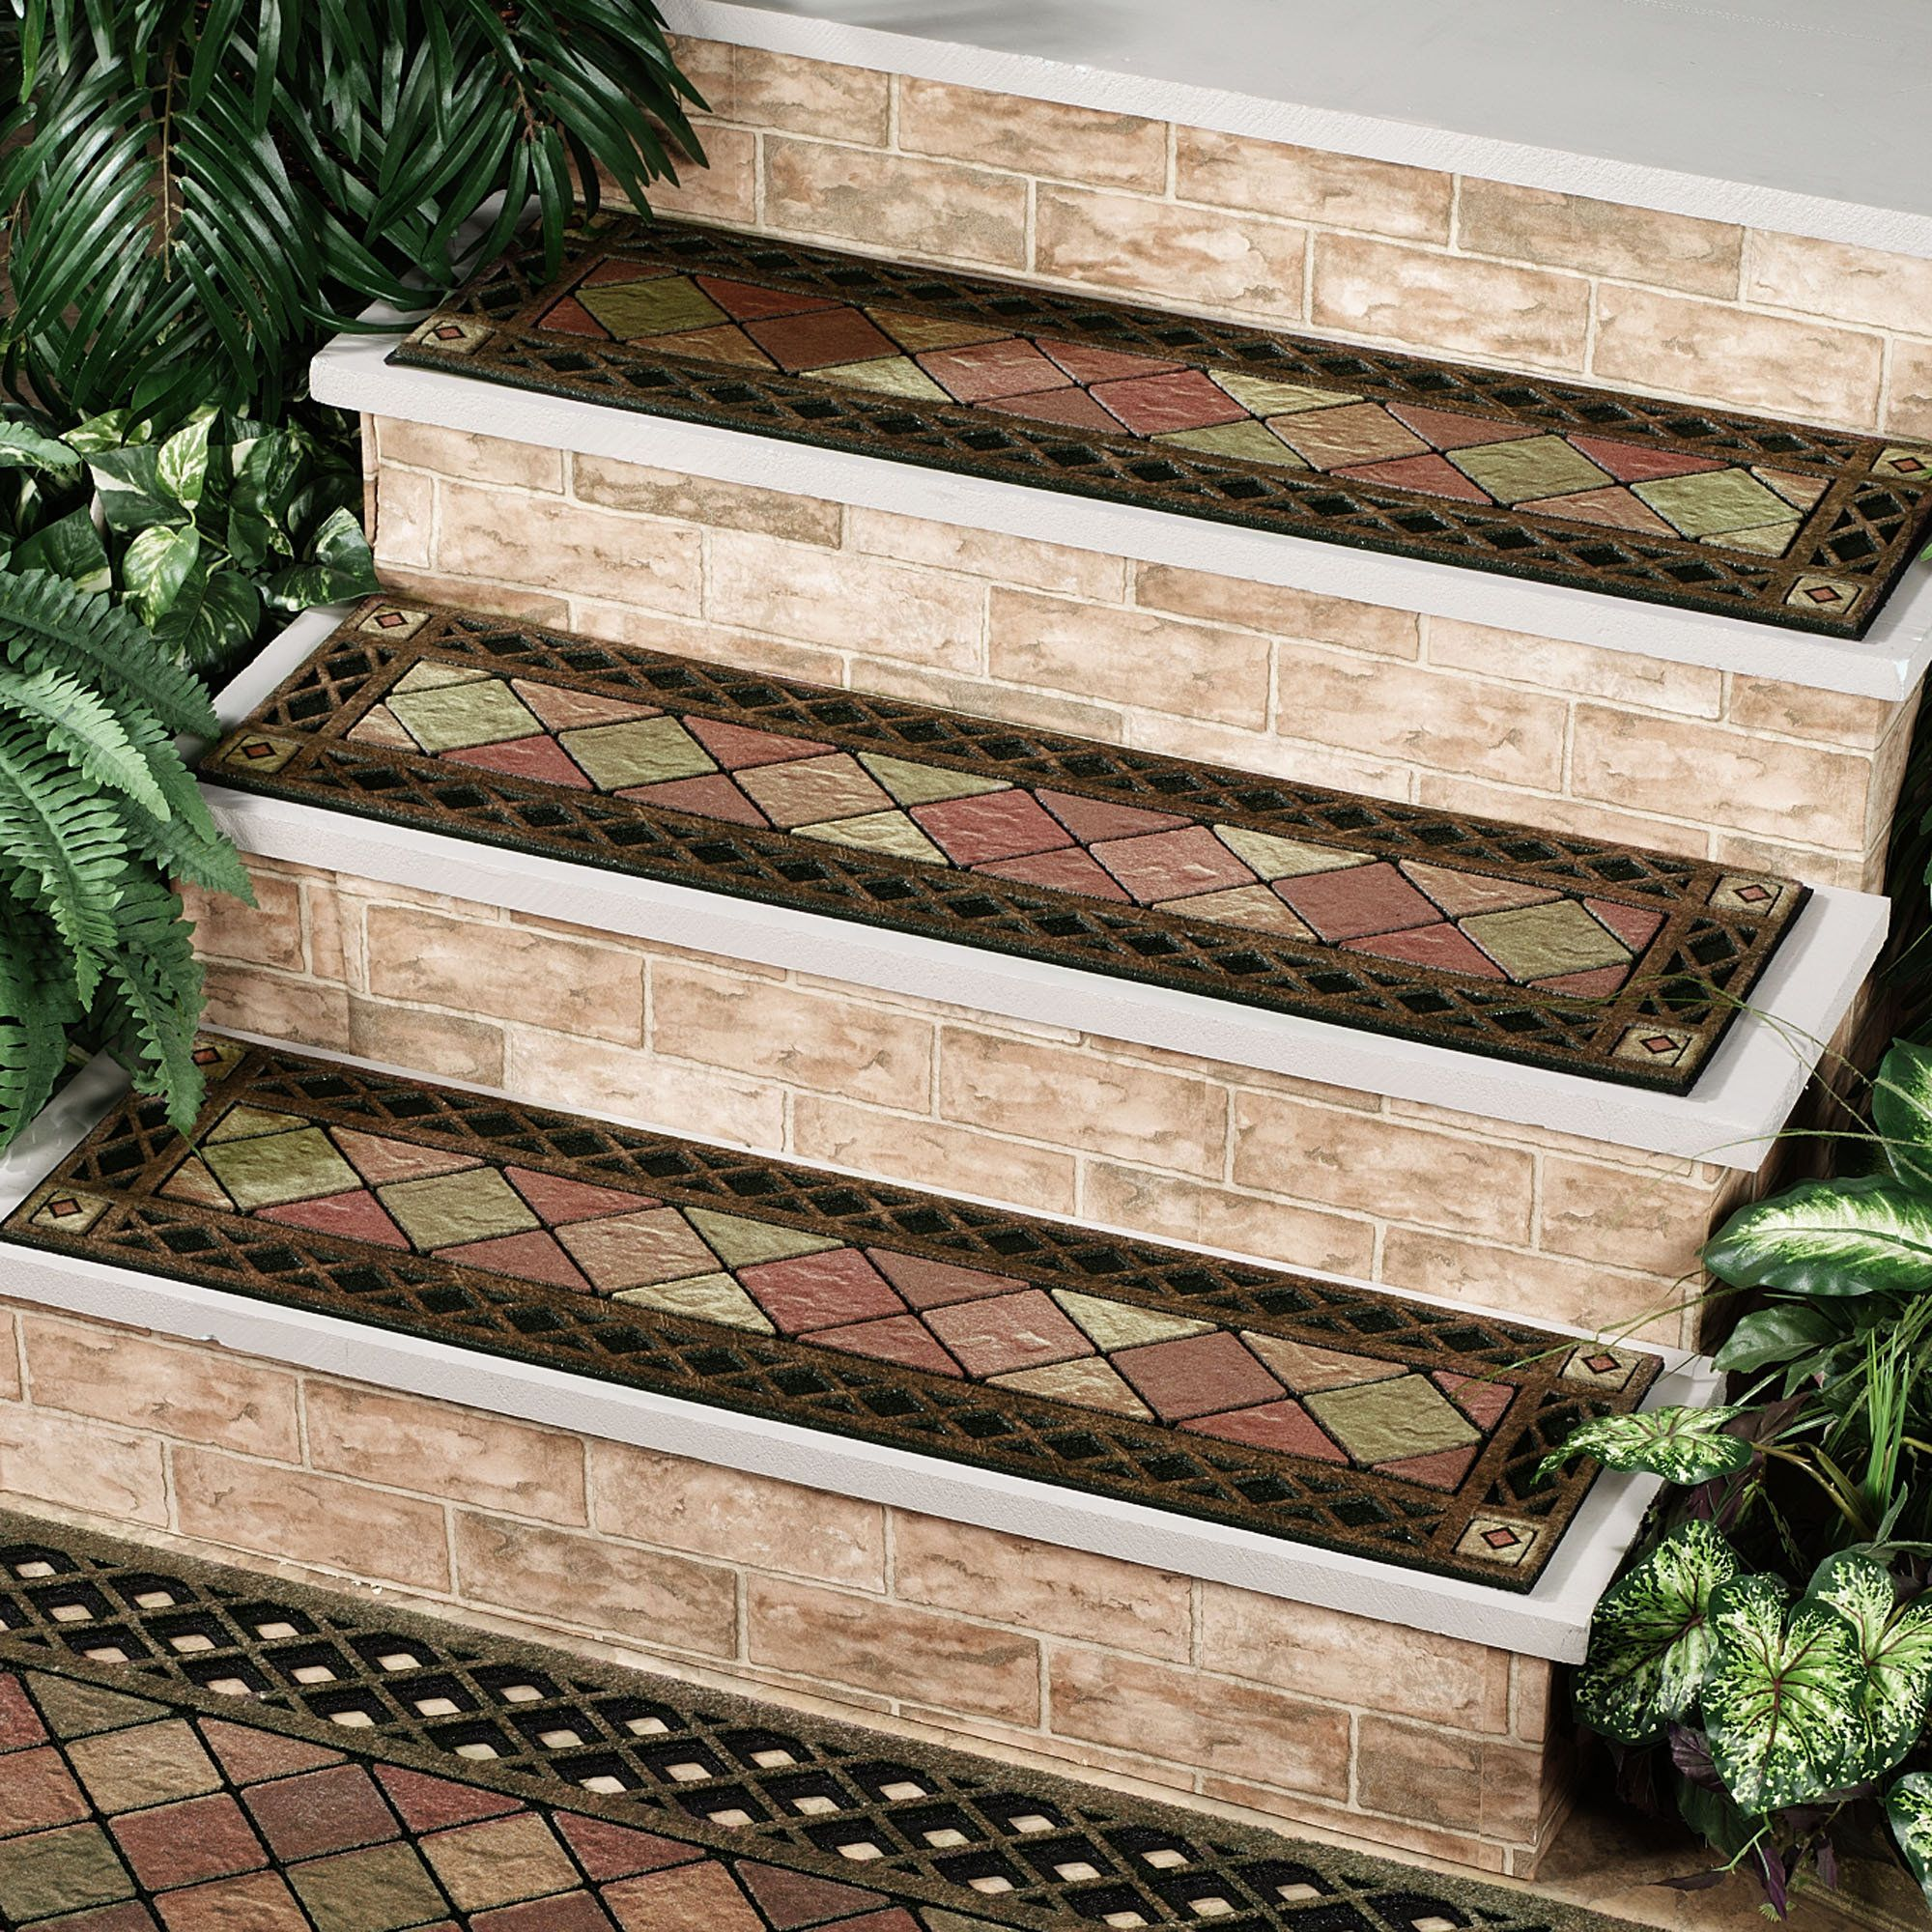 Outdoor Stair Treads Home Depot Stone Ii Stair Tread | Home Depot Outdoor Stairs